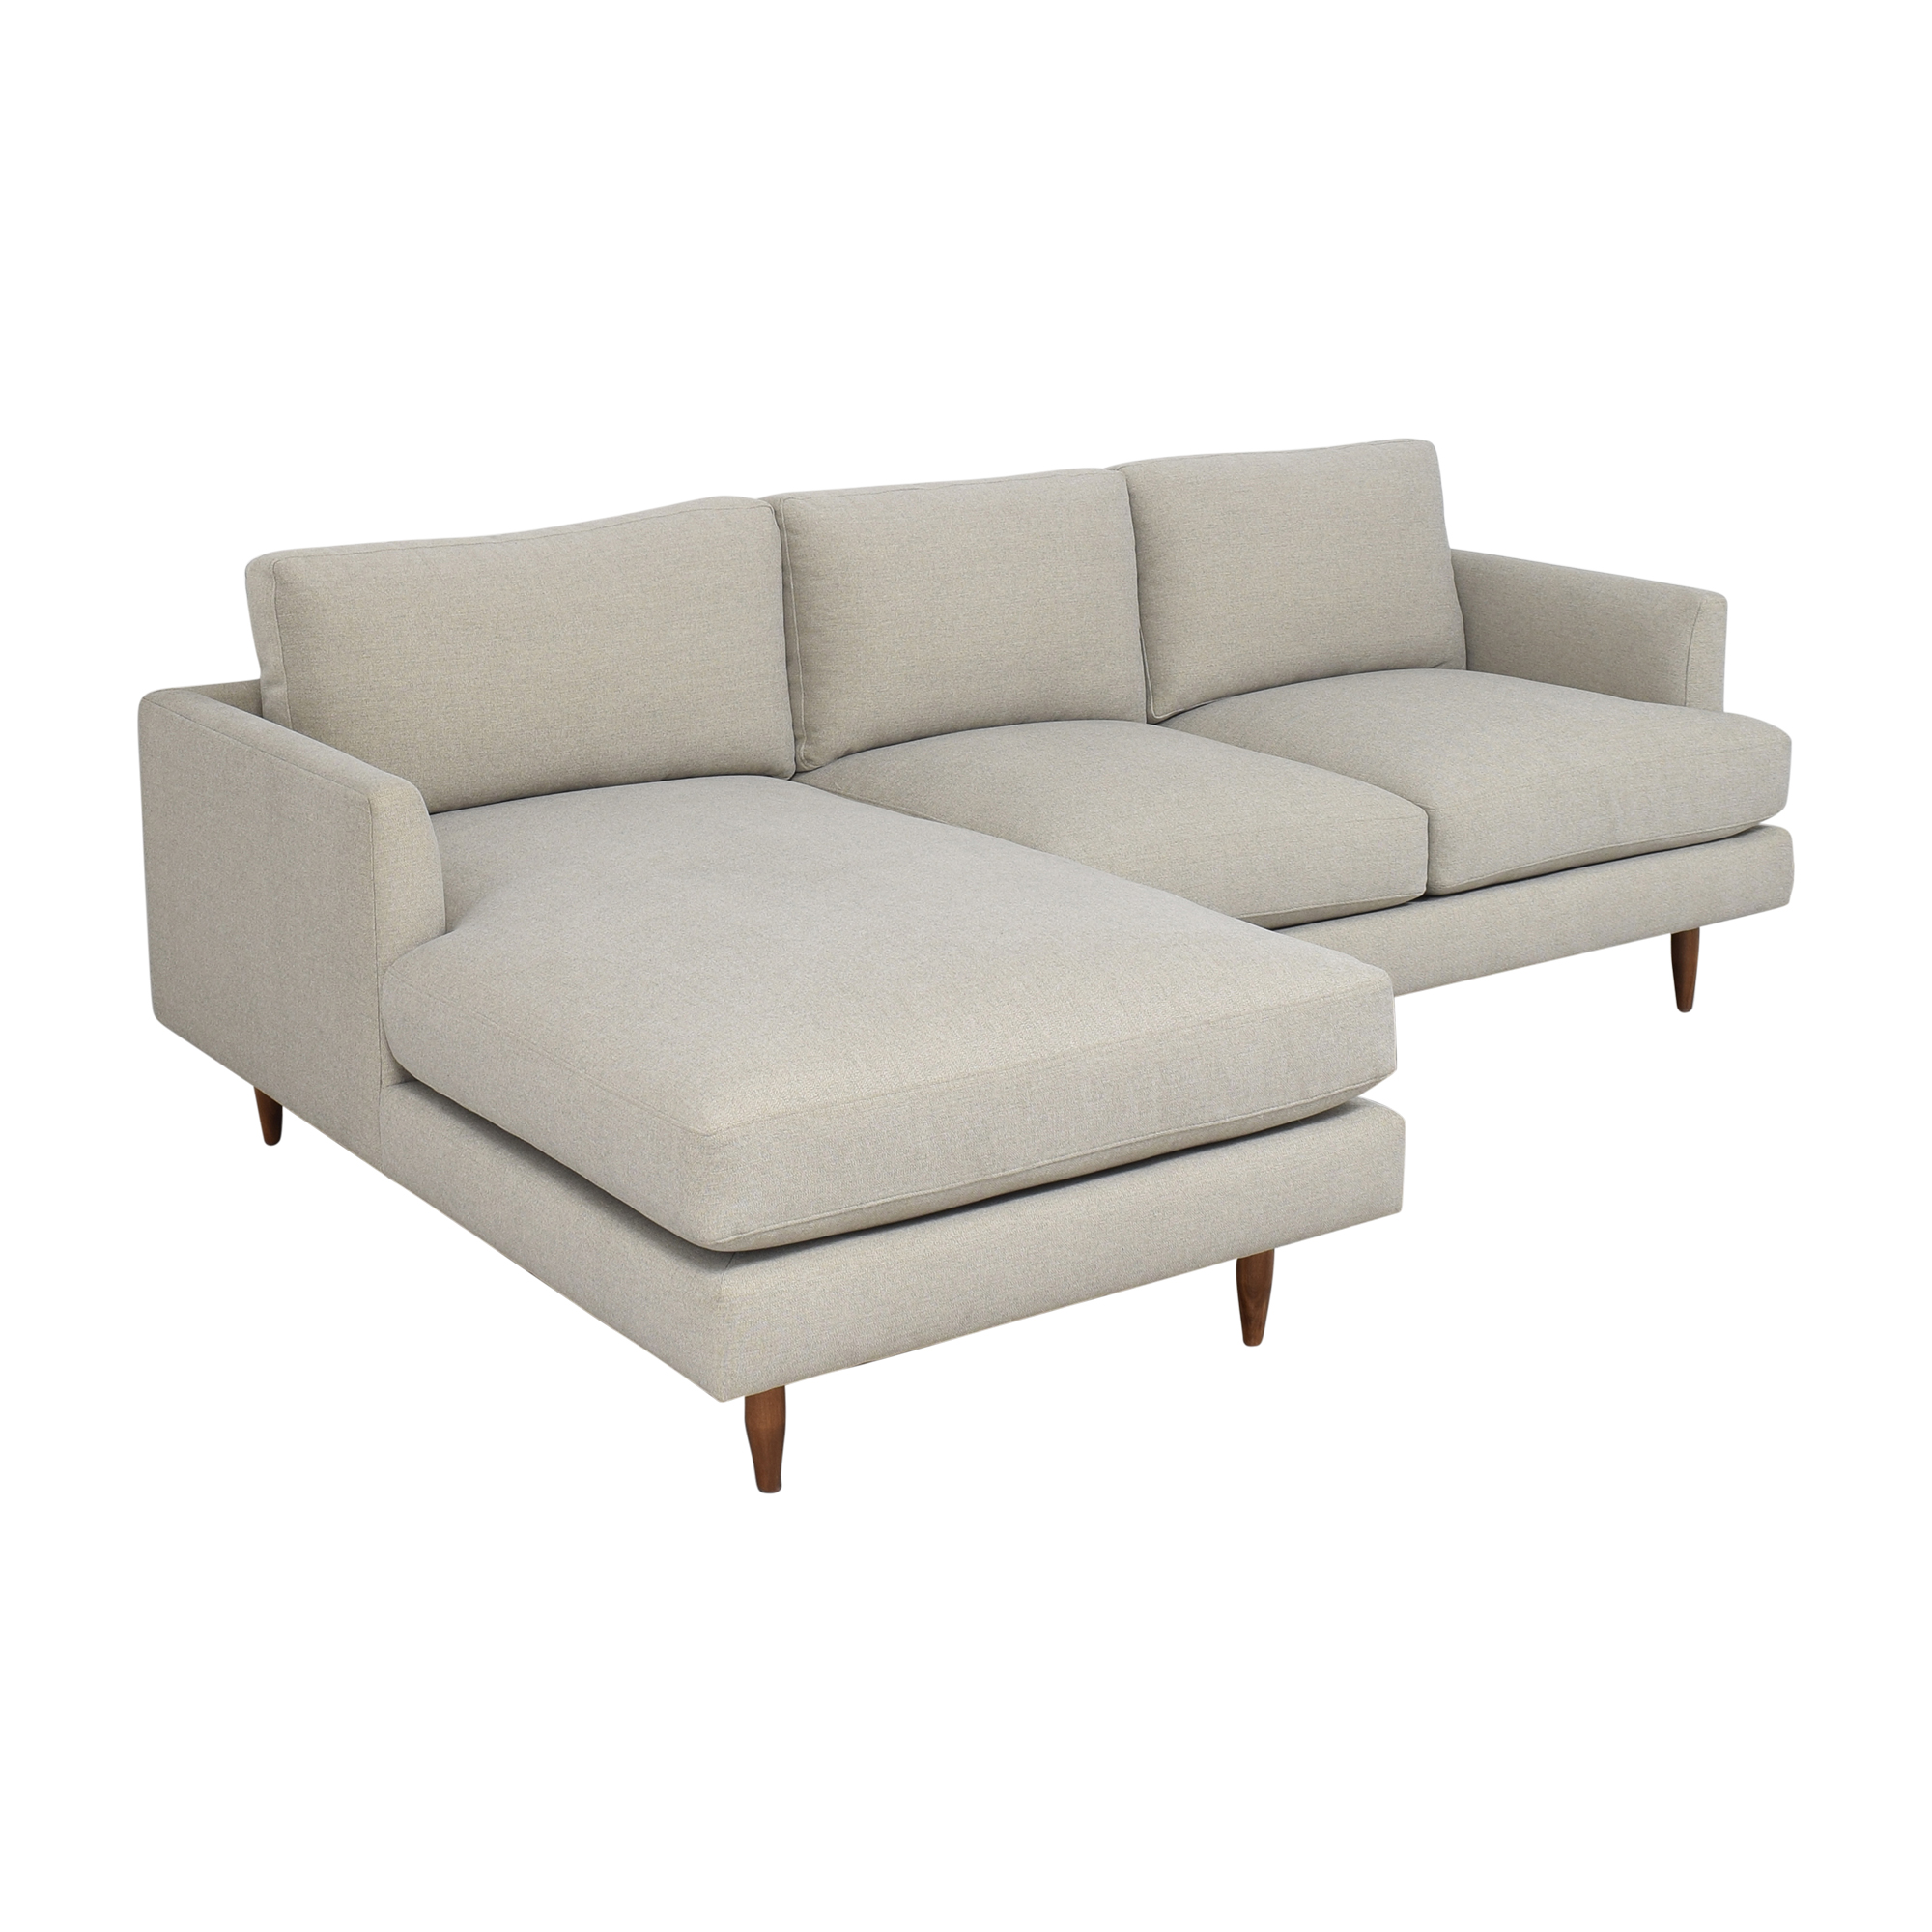 BenchMade Modern BenchMade Modern Crowd Pleaser Sofa With Chaise Sectionals